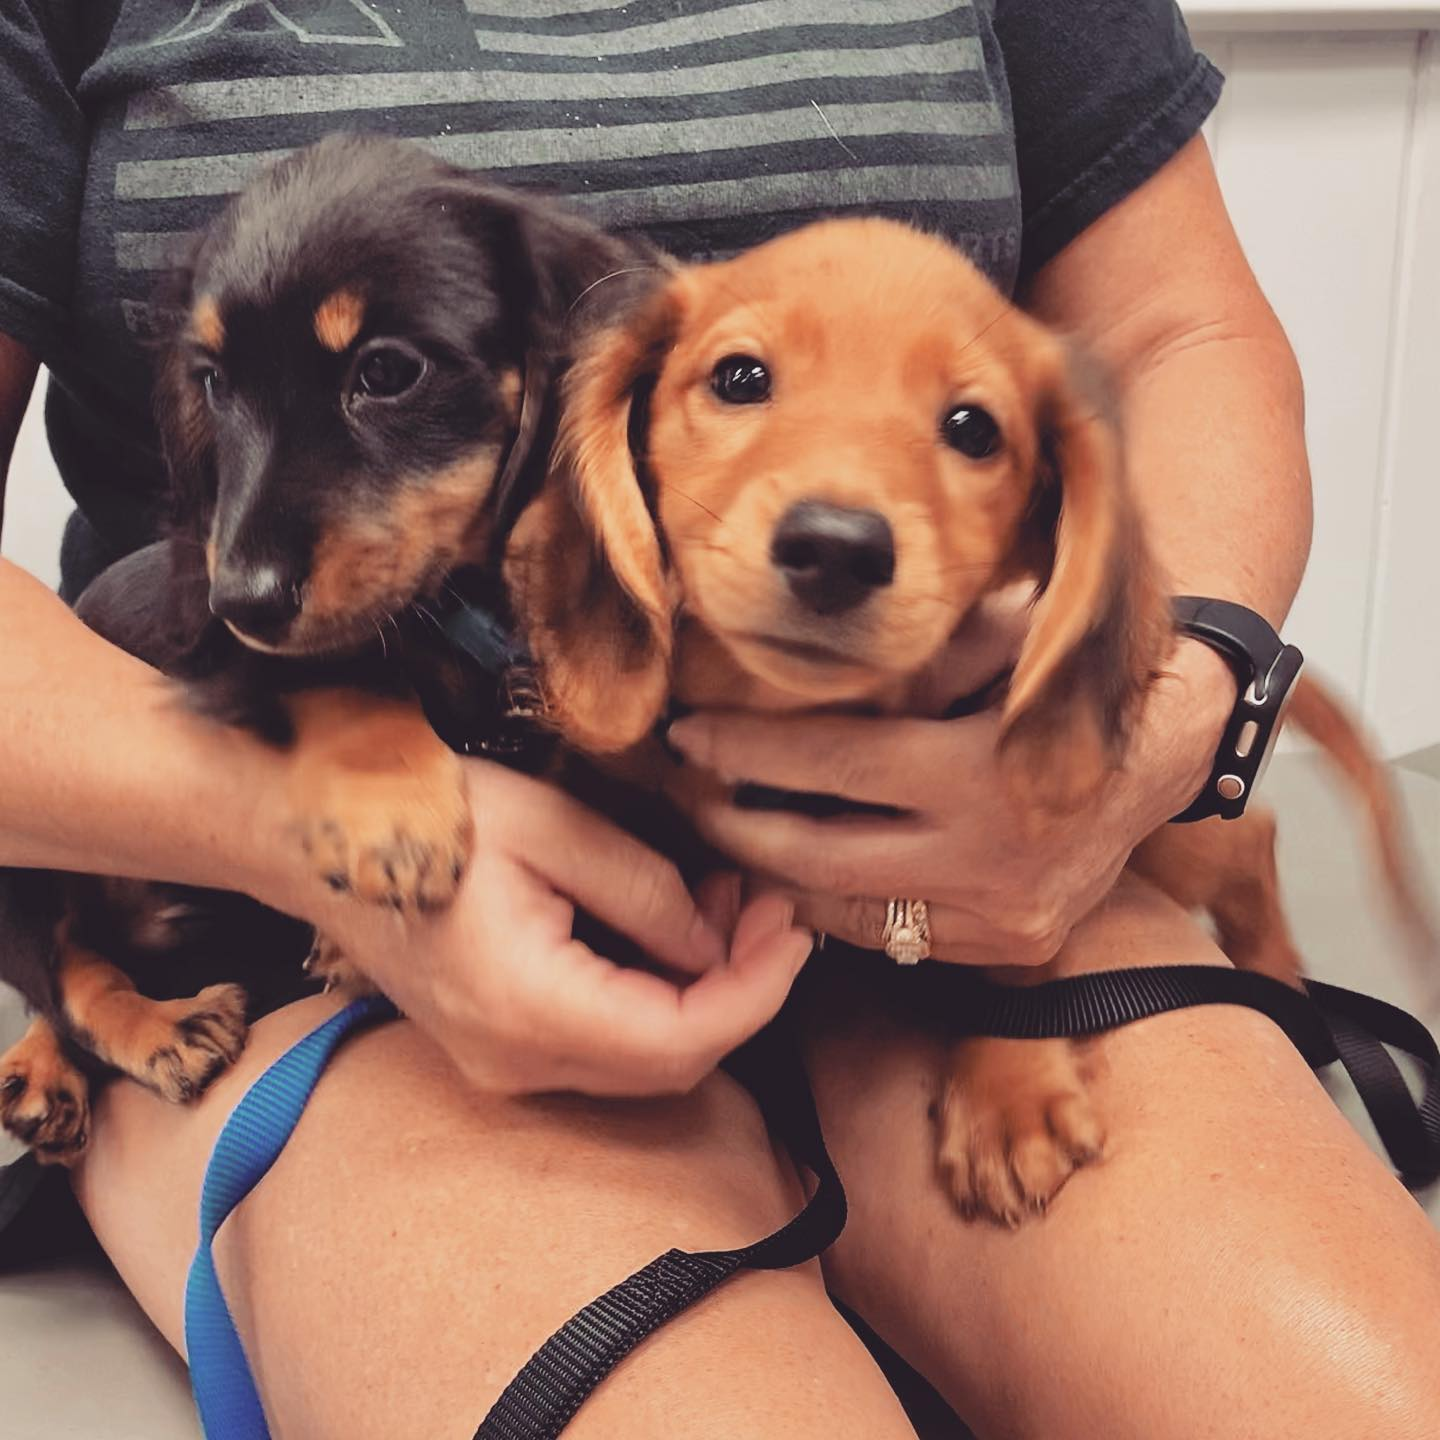 Two puppies in someone's lap